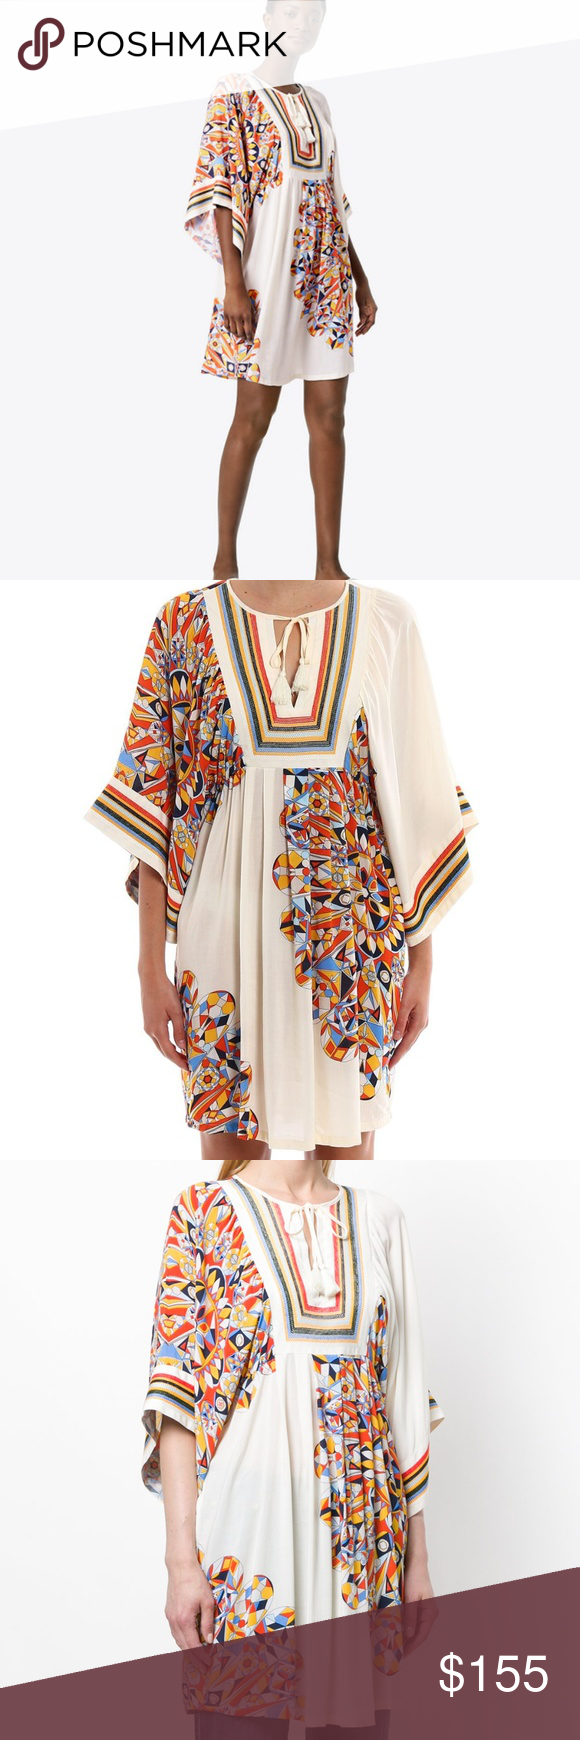 13022d8b97 Tory Burch Kaleidoscope Beach Tunic Cover-Up Detail:-New with tag Whether  you